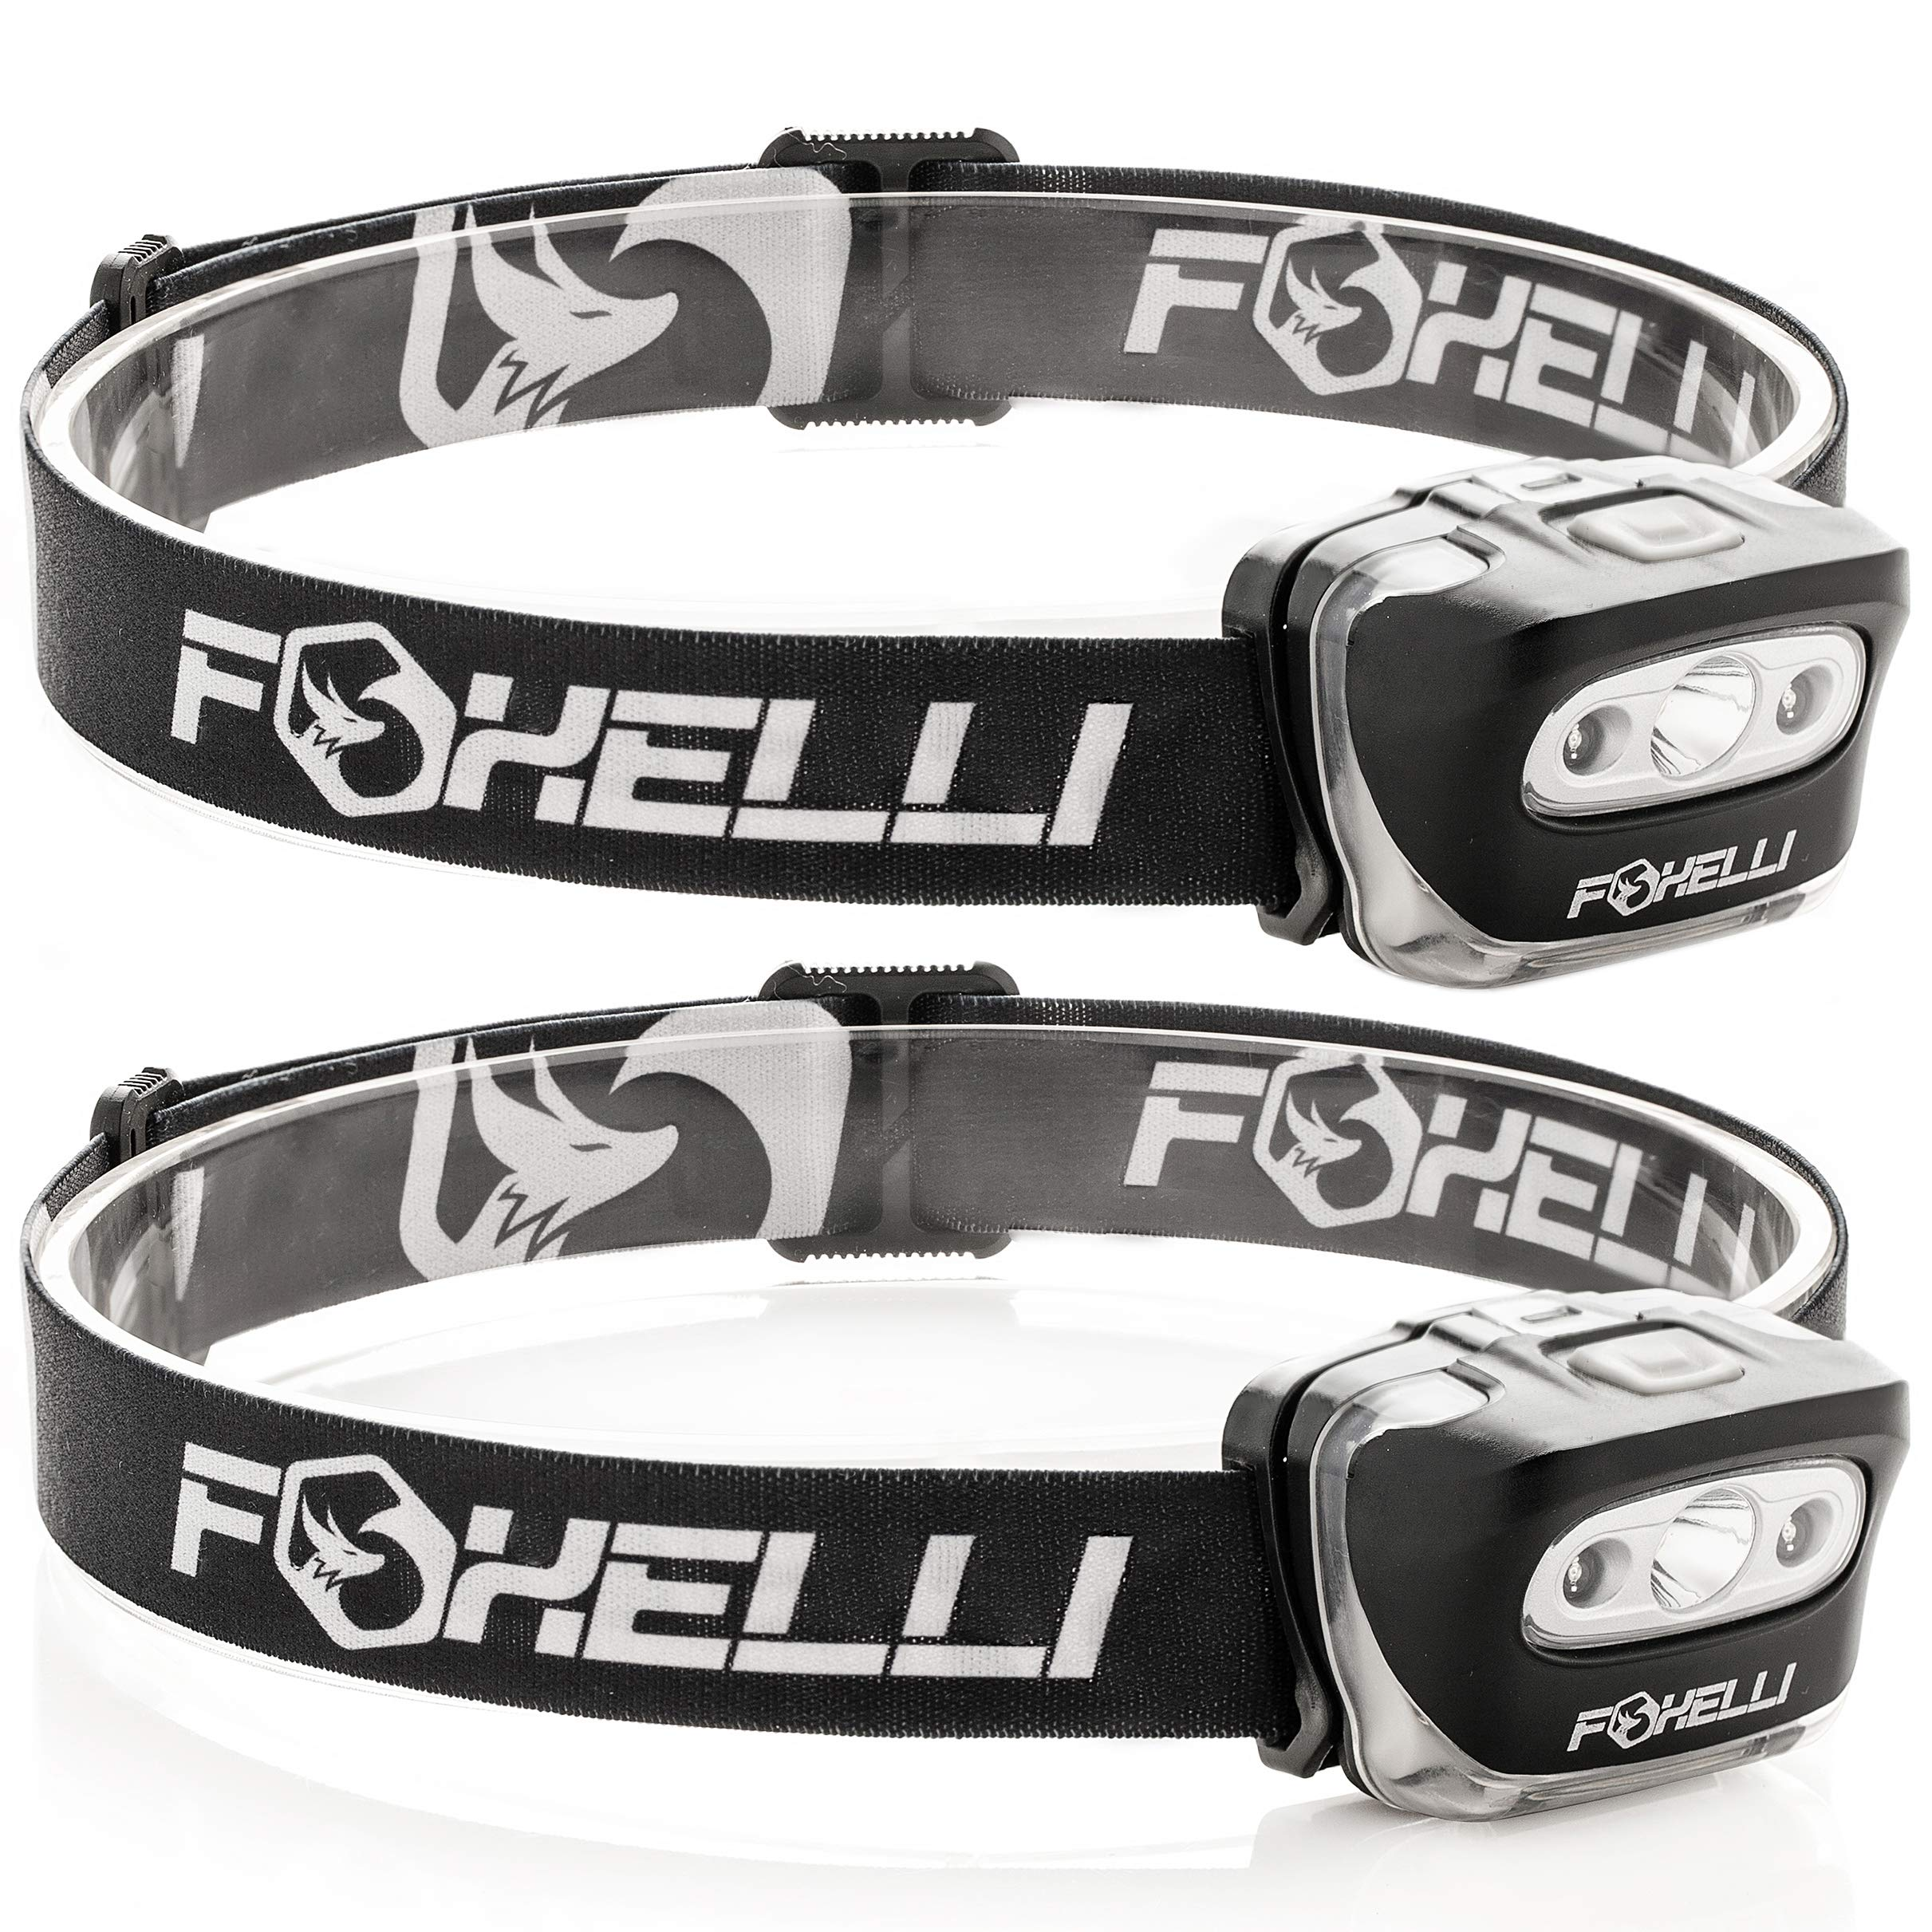 Foxelli Headlamp Flashlight (2-Pack) - 165 Lumen, 3 x AAA Batteries Operated (Included), Bright White Cree Led & Red Light, Perfect for Runners, Lightweight, Waterproof, Adjustable Headband by Foxelli